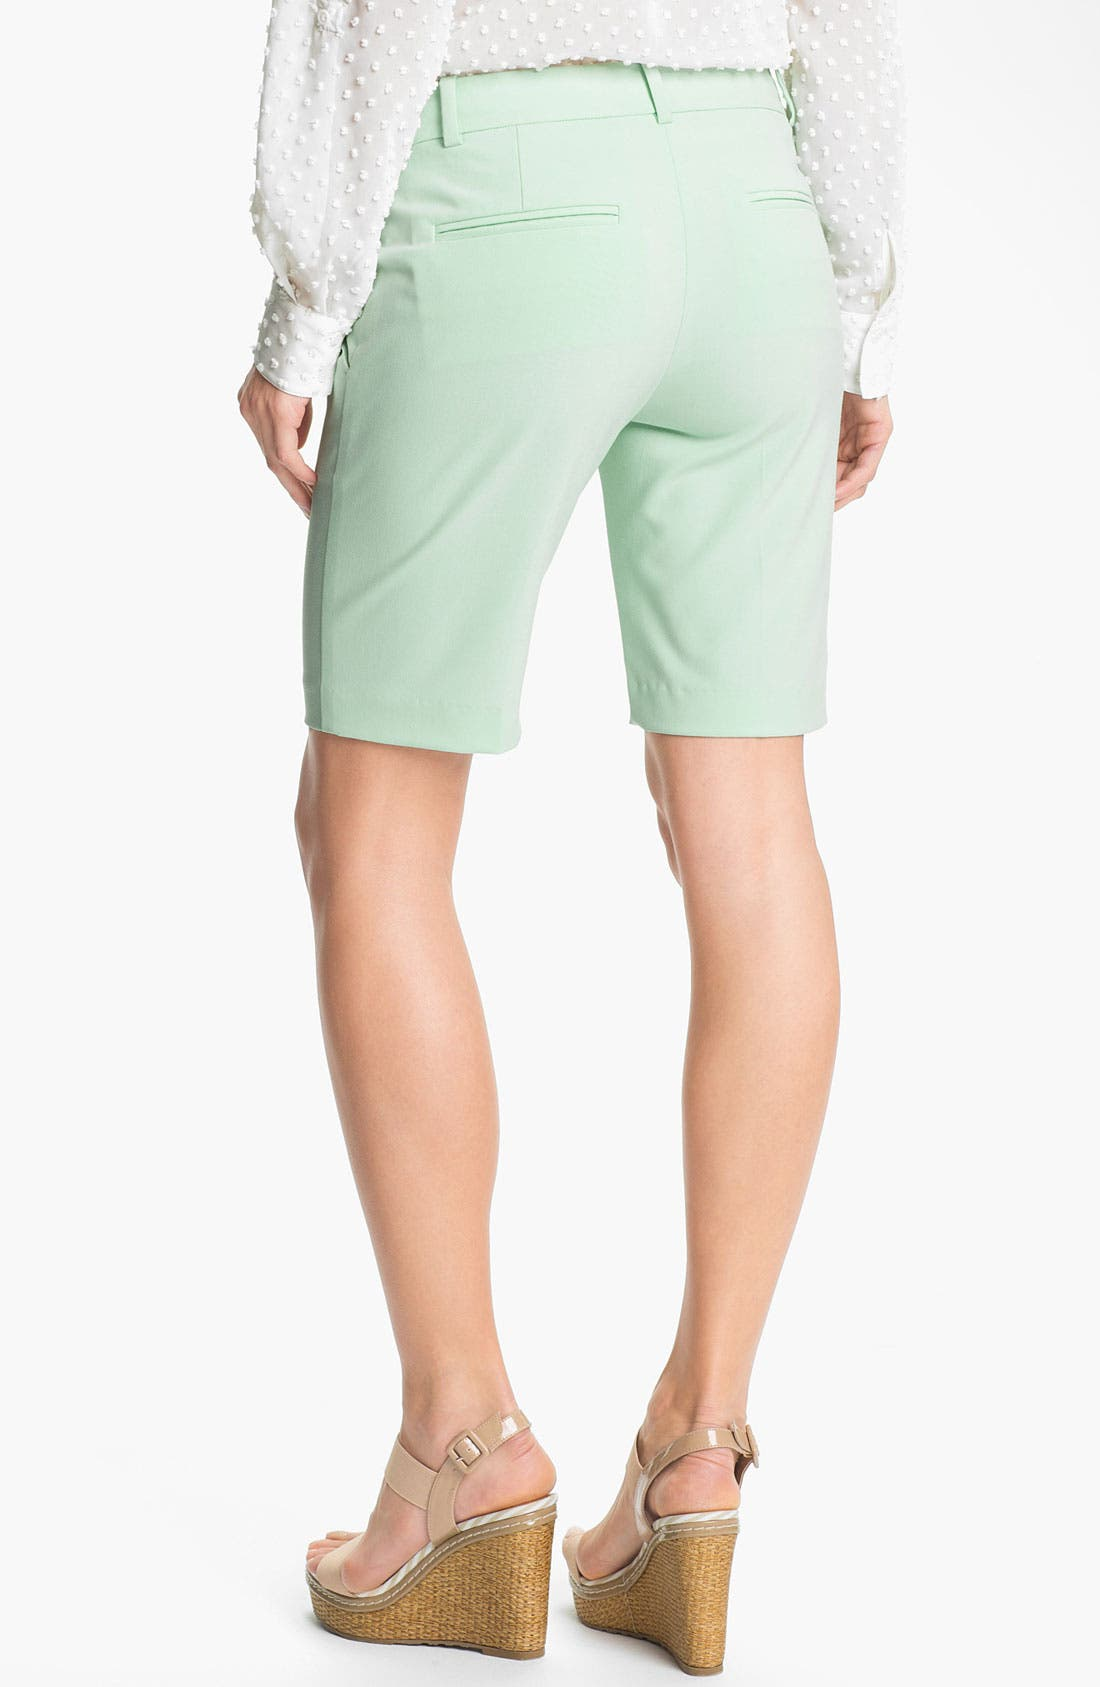 Bermuda Shorts,                             Alternate thumbnail 2, color,                             New Mint